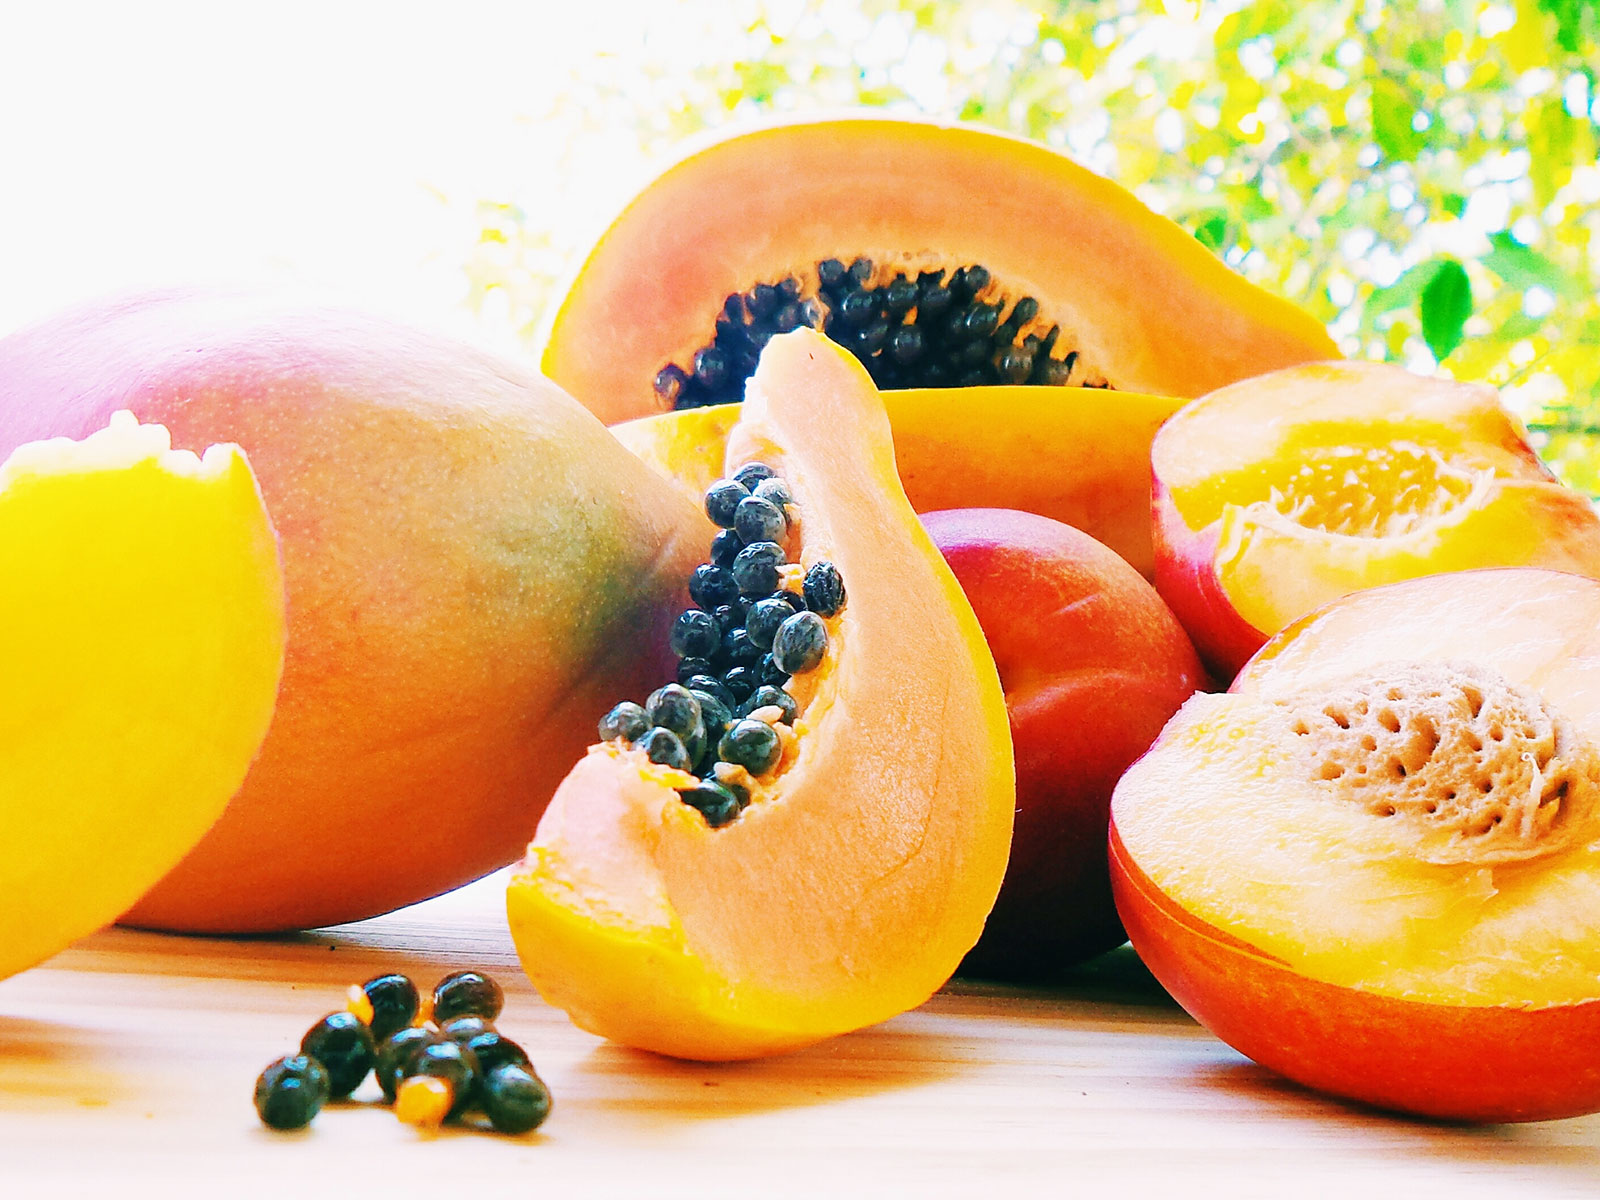 More people sickened by salmonella in papayas